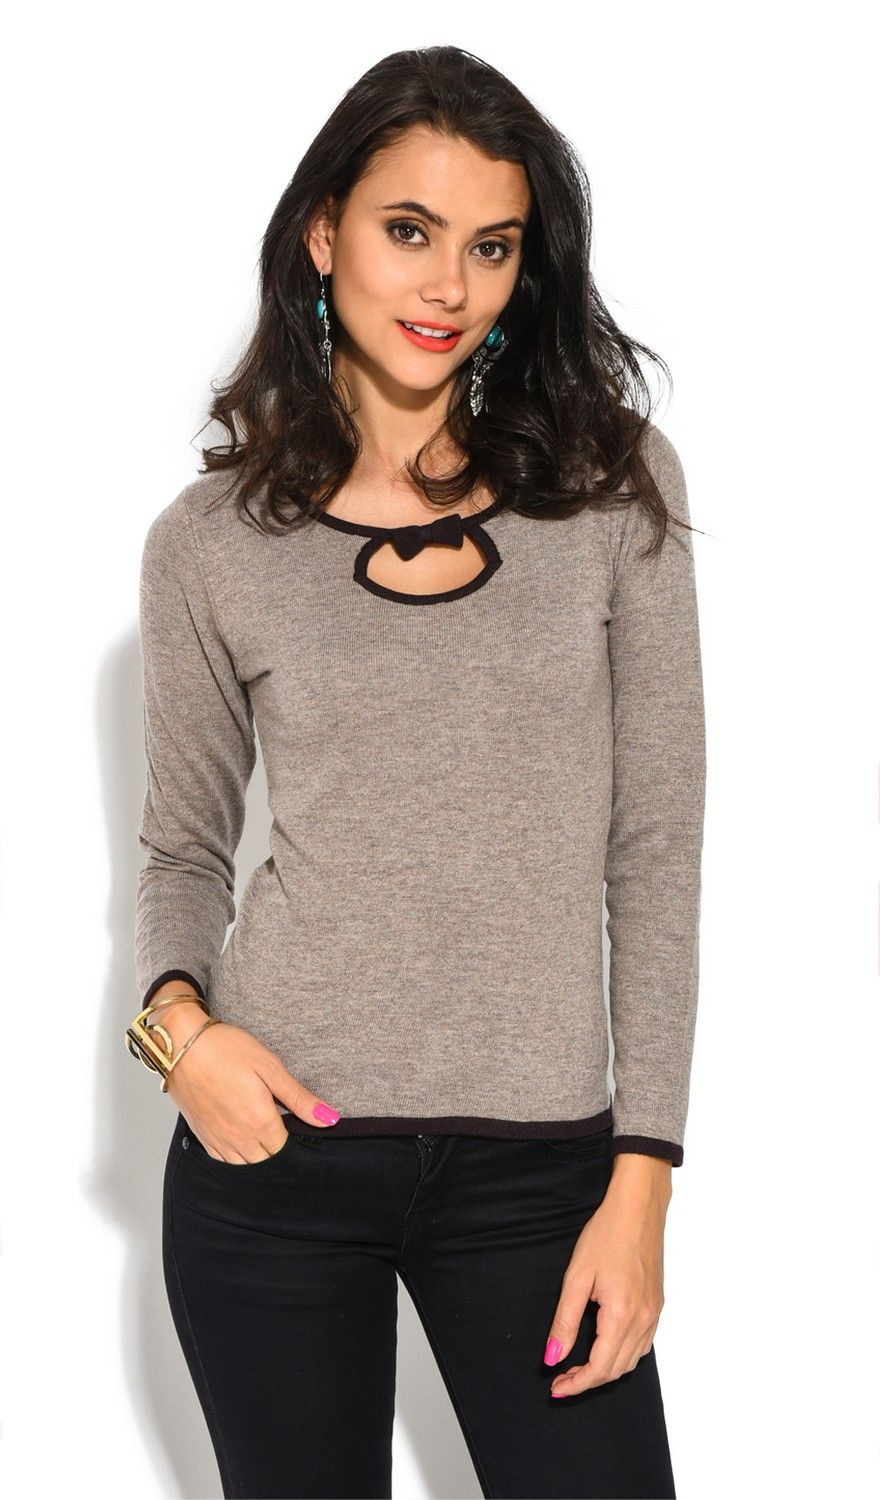 Assuili Round Neck Two-tone Butterfly Knot Sweater in Brown